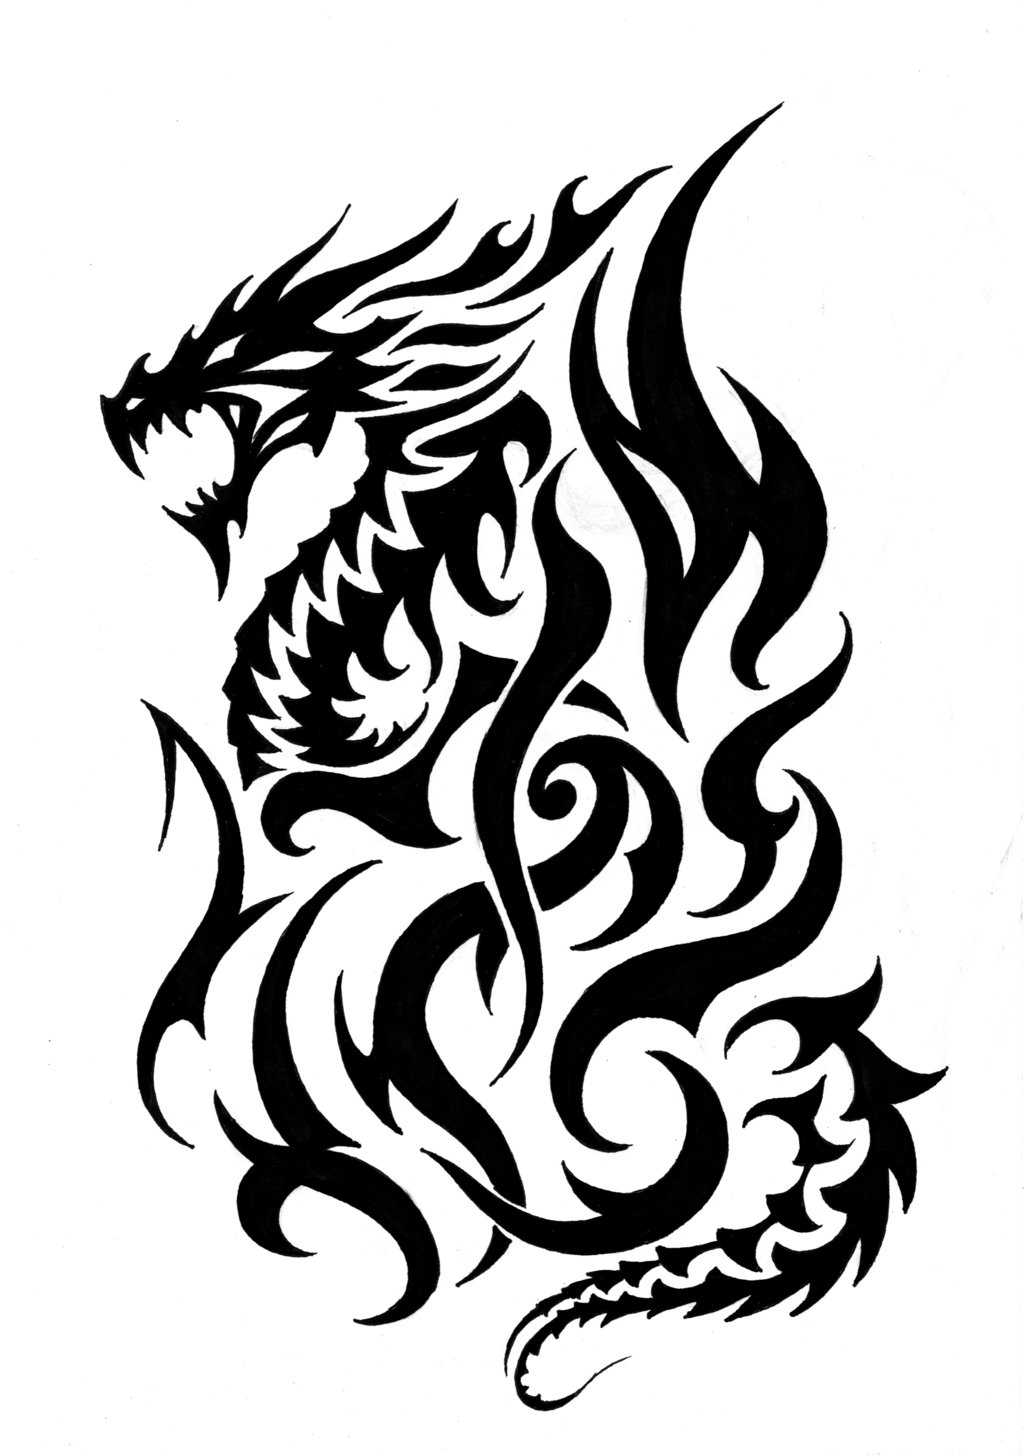 Tribal Fire Dragon Tattoos Designs - ClipArt Best